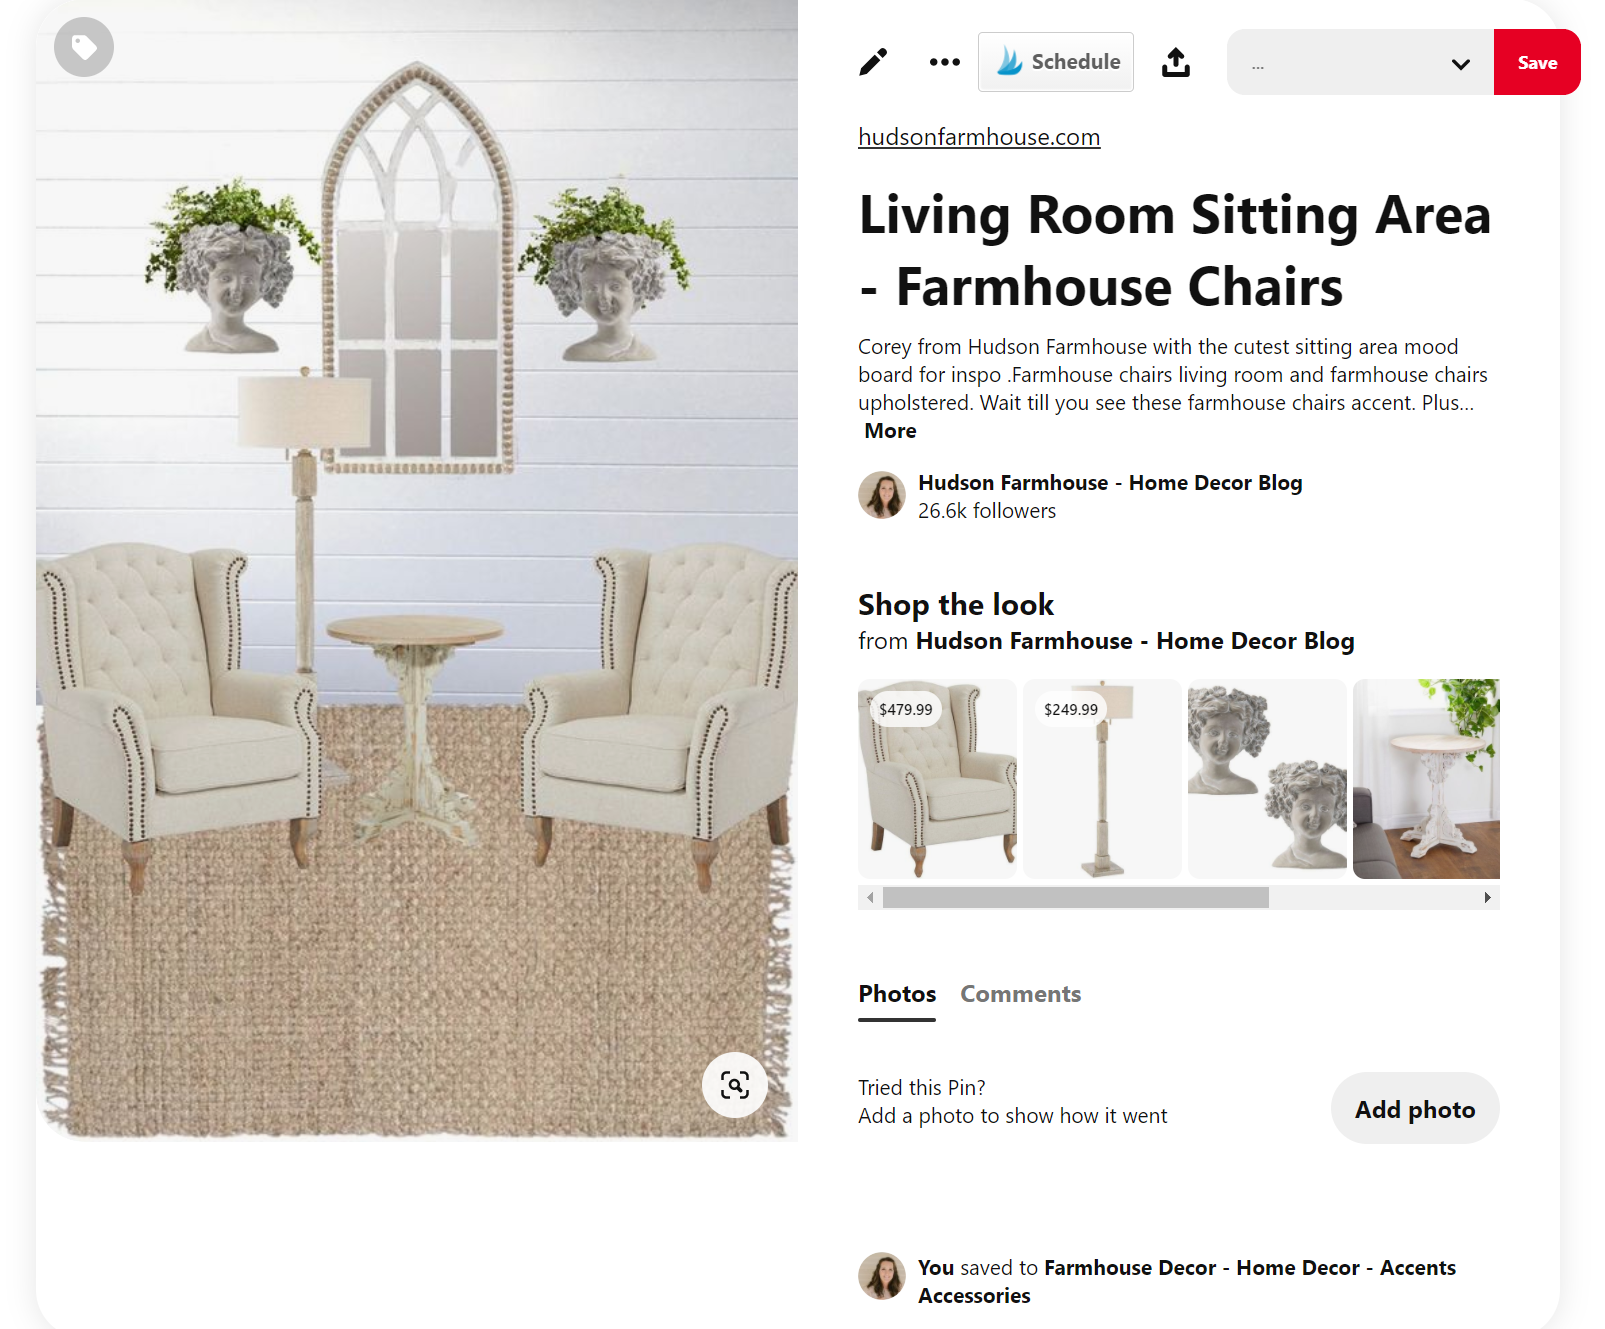 pinterest product tagging - How to Tag Products on Pinterest with Clickable URLs - Collection Pins